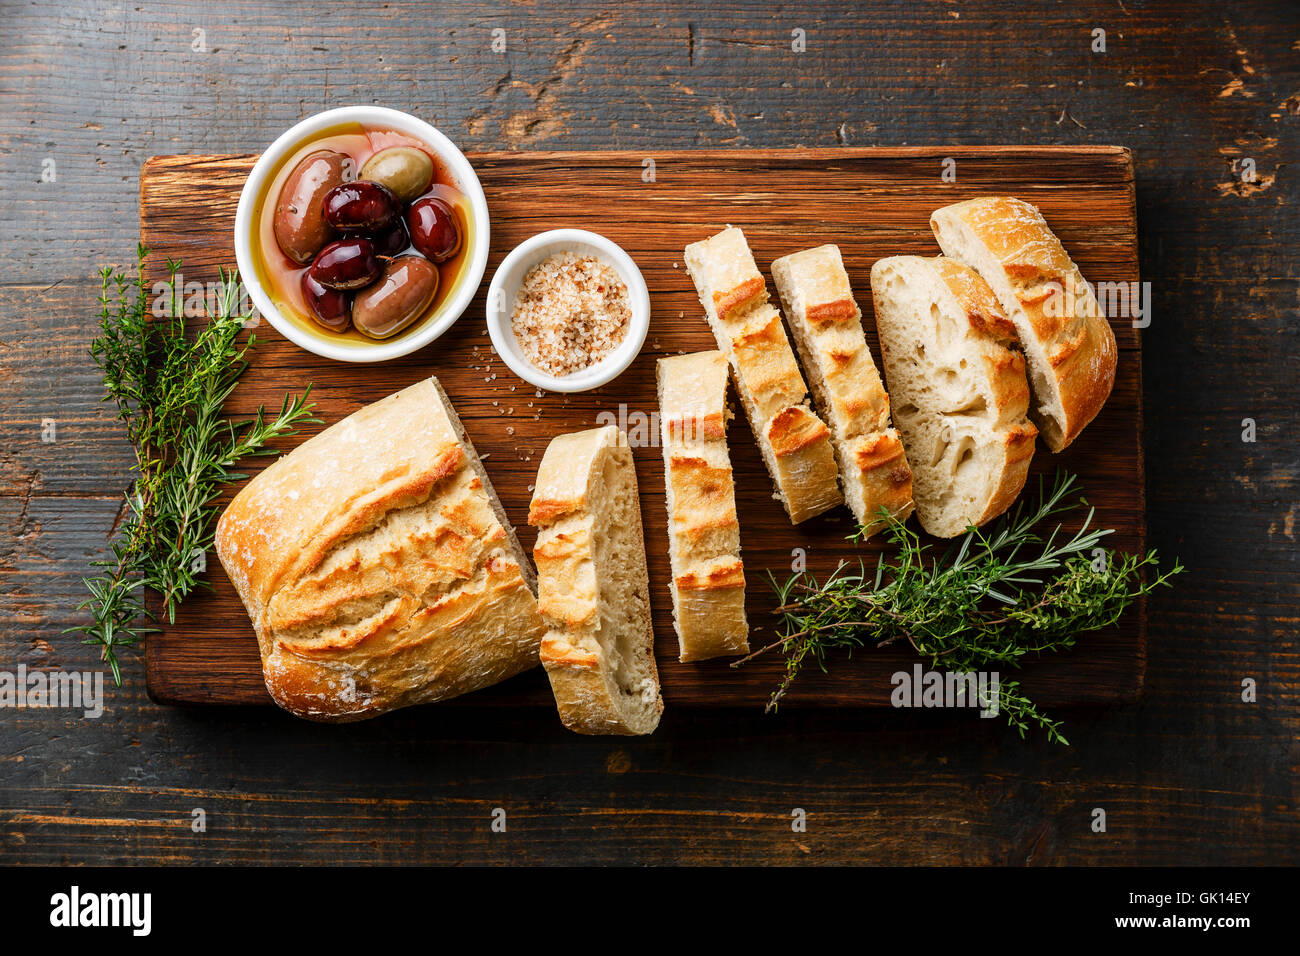 Fresh Ciabatta bread cut in slices on wooden cutting board with olives and herbs on rustic wooden background - Stock Image